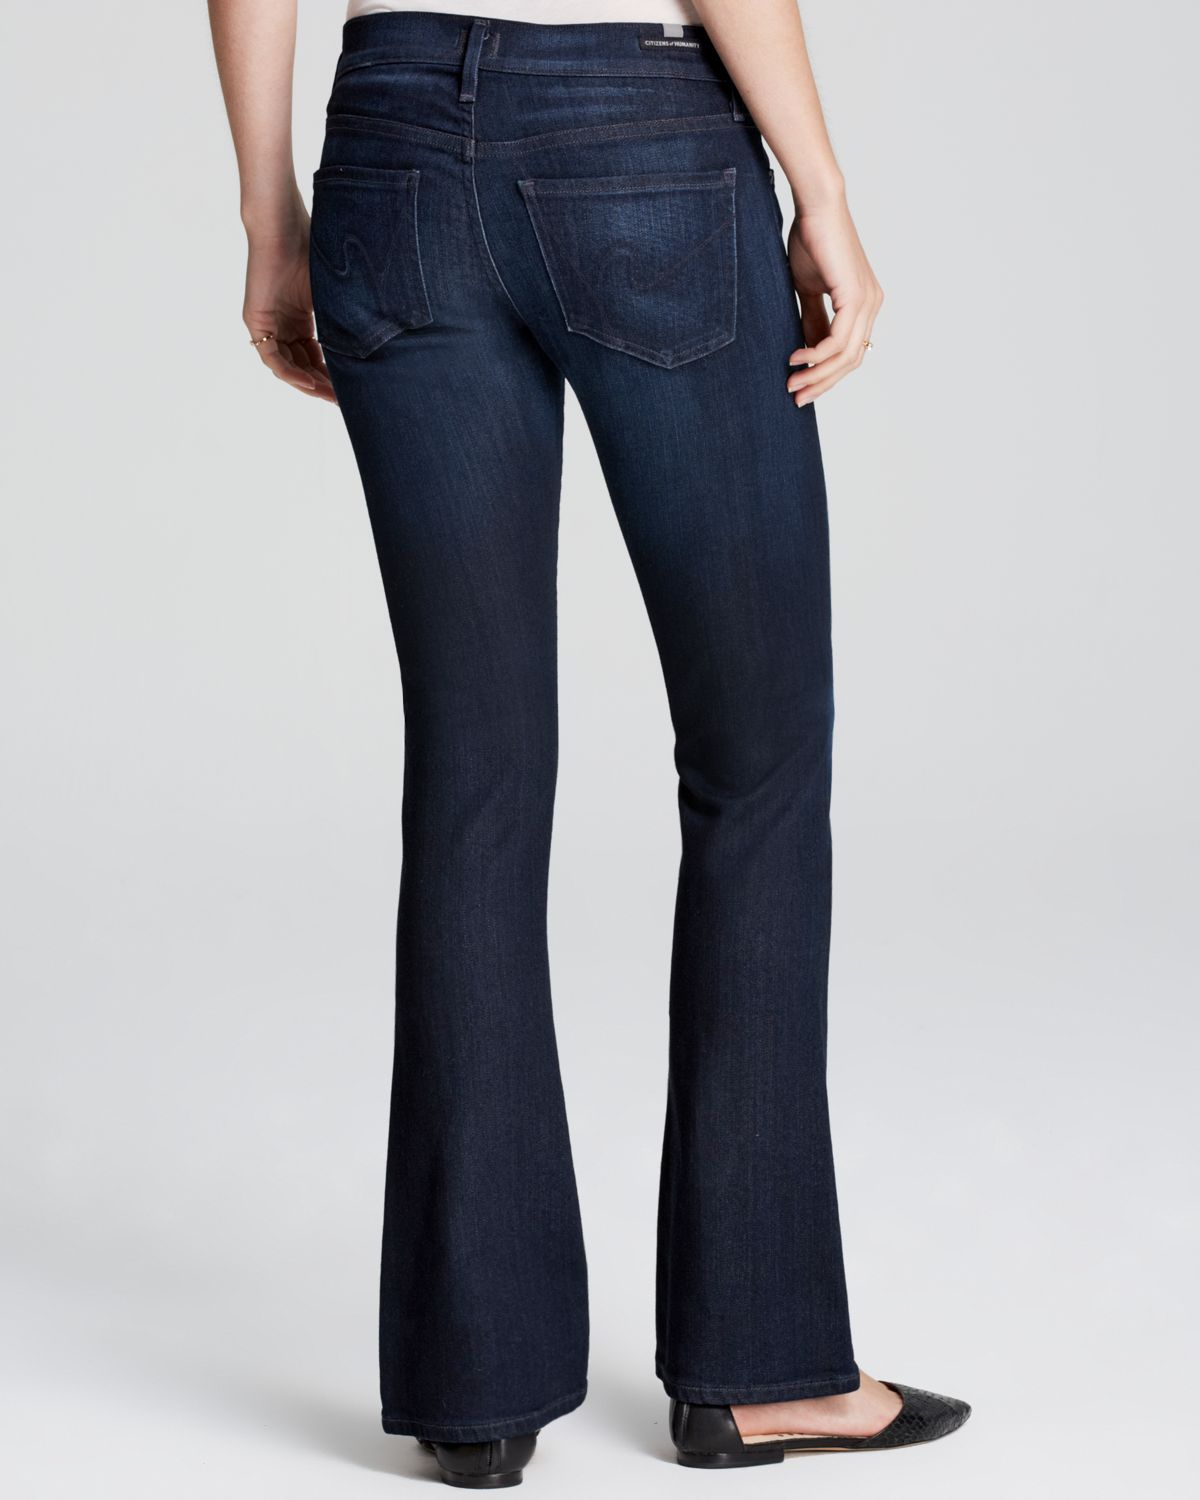 9d83612100a Citizens of Humanity Jeans - Emanuelle Petite Slim Bootcut In Space ...